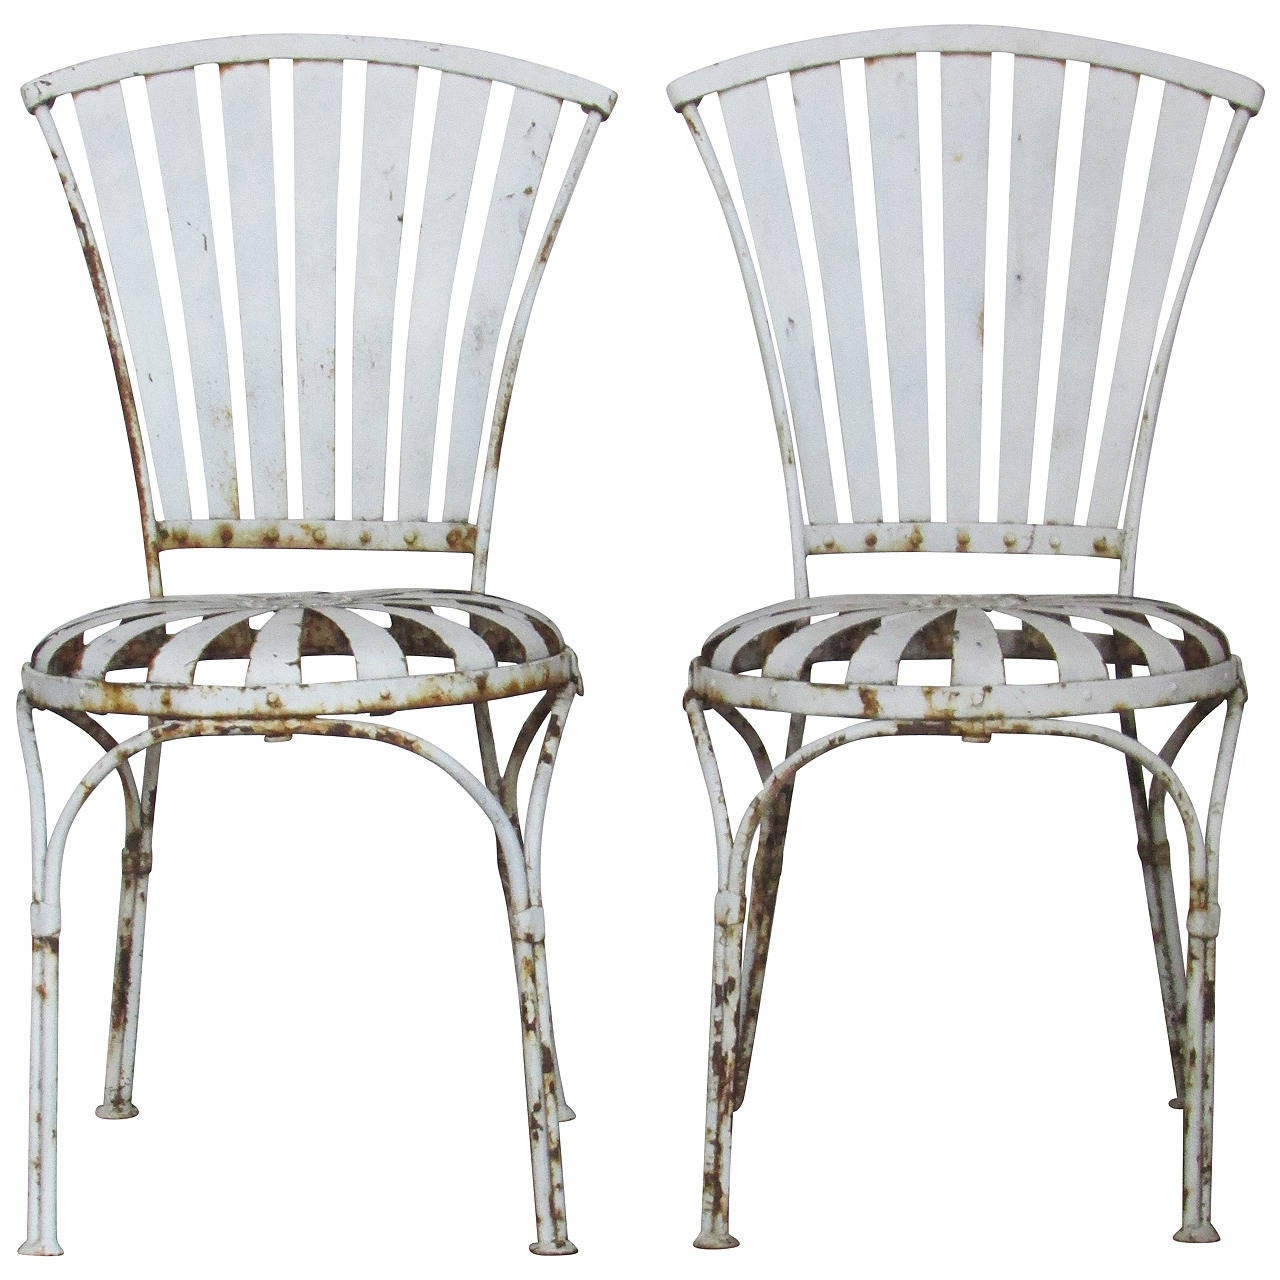 Garden Furniture Steel sprung steel garden chairsfrancois carre at 1stdibs